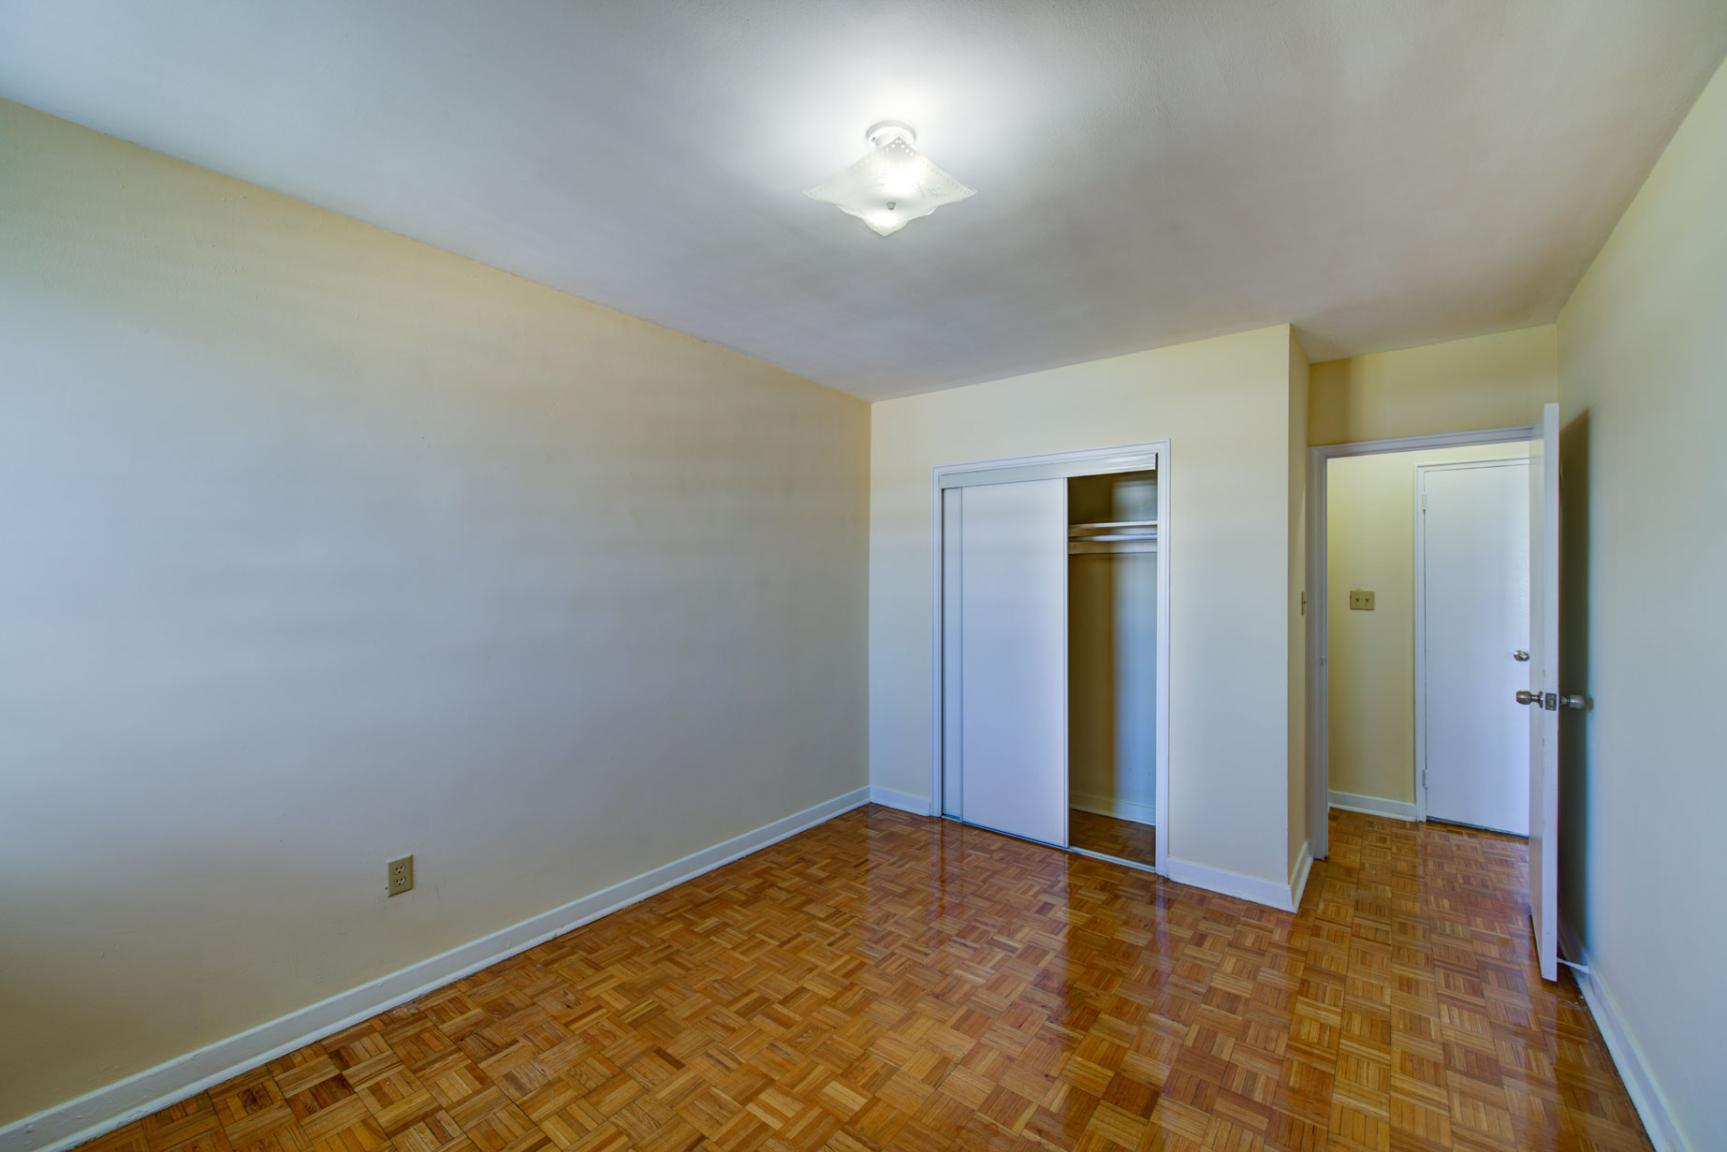 Studio / Bachelor Apartments for rent in Toronto at Lake Promenade Community - Photo 16 - RentersPages – L166815